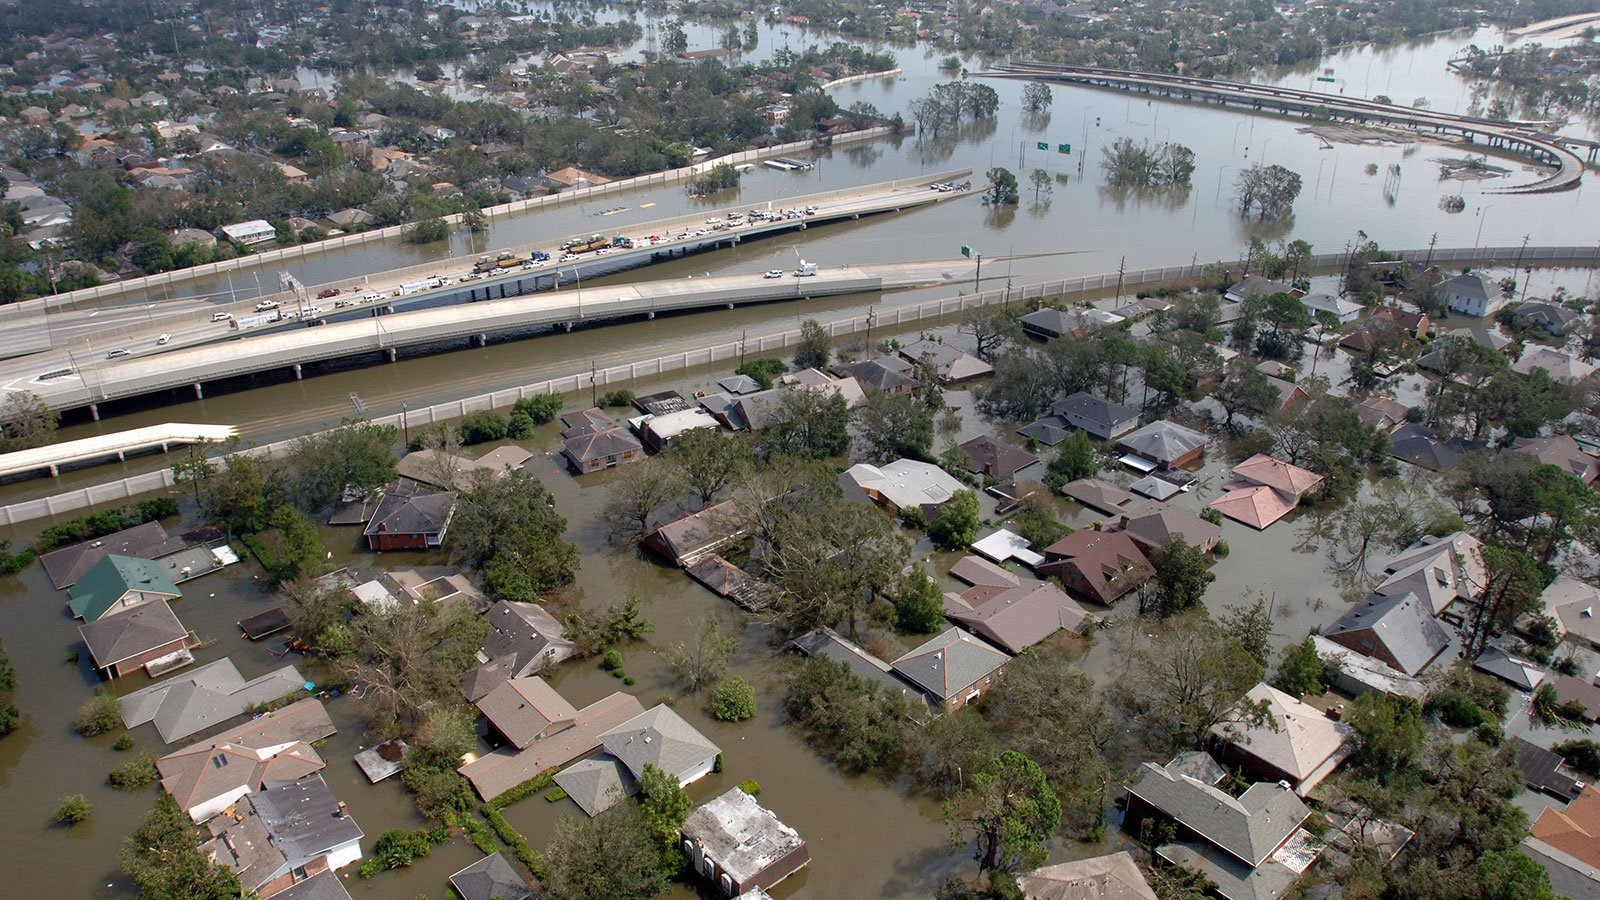 A flooded New Orleans neighborhood with a roadway going down into flood waters after Hurricane Katrina on August 29, 2005